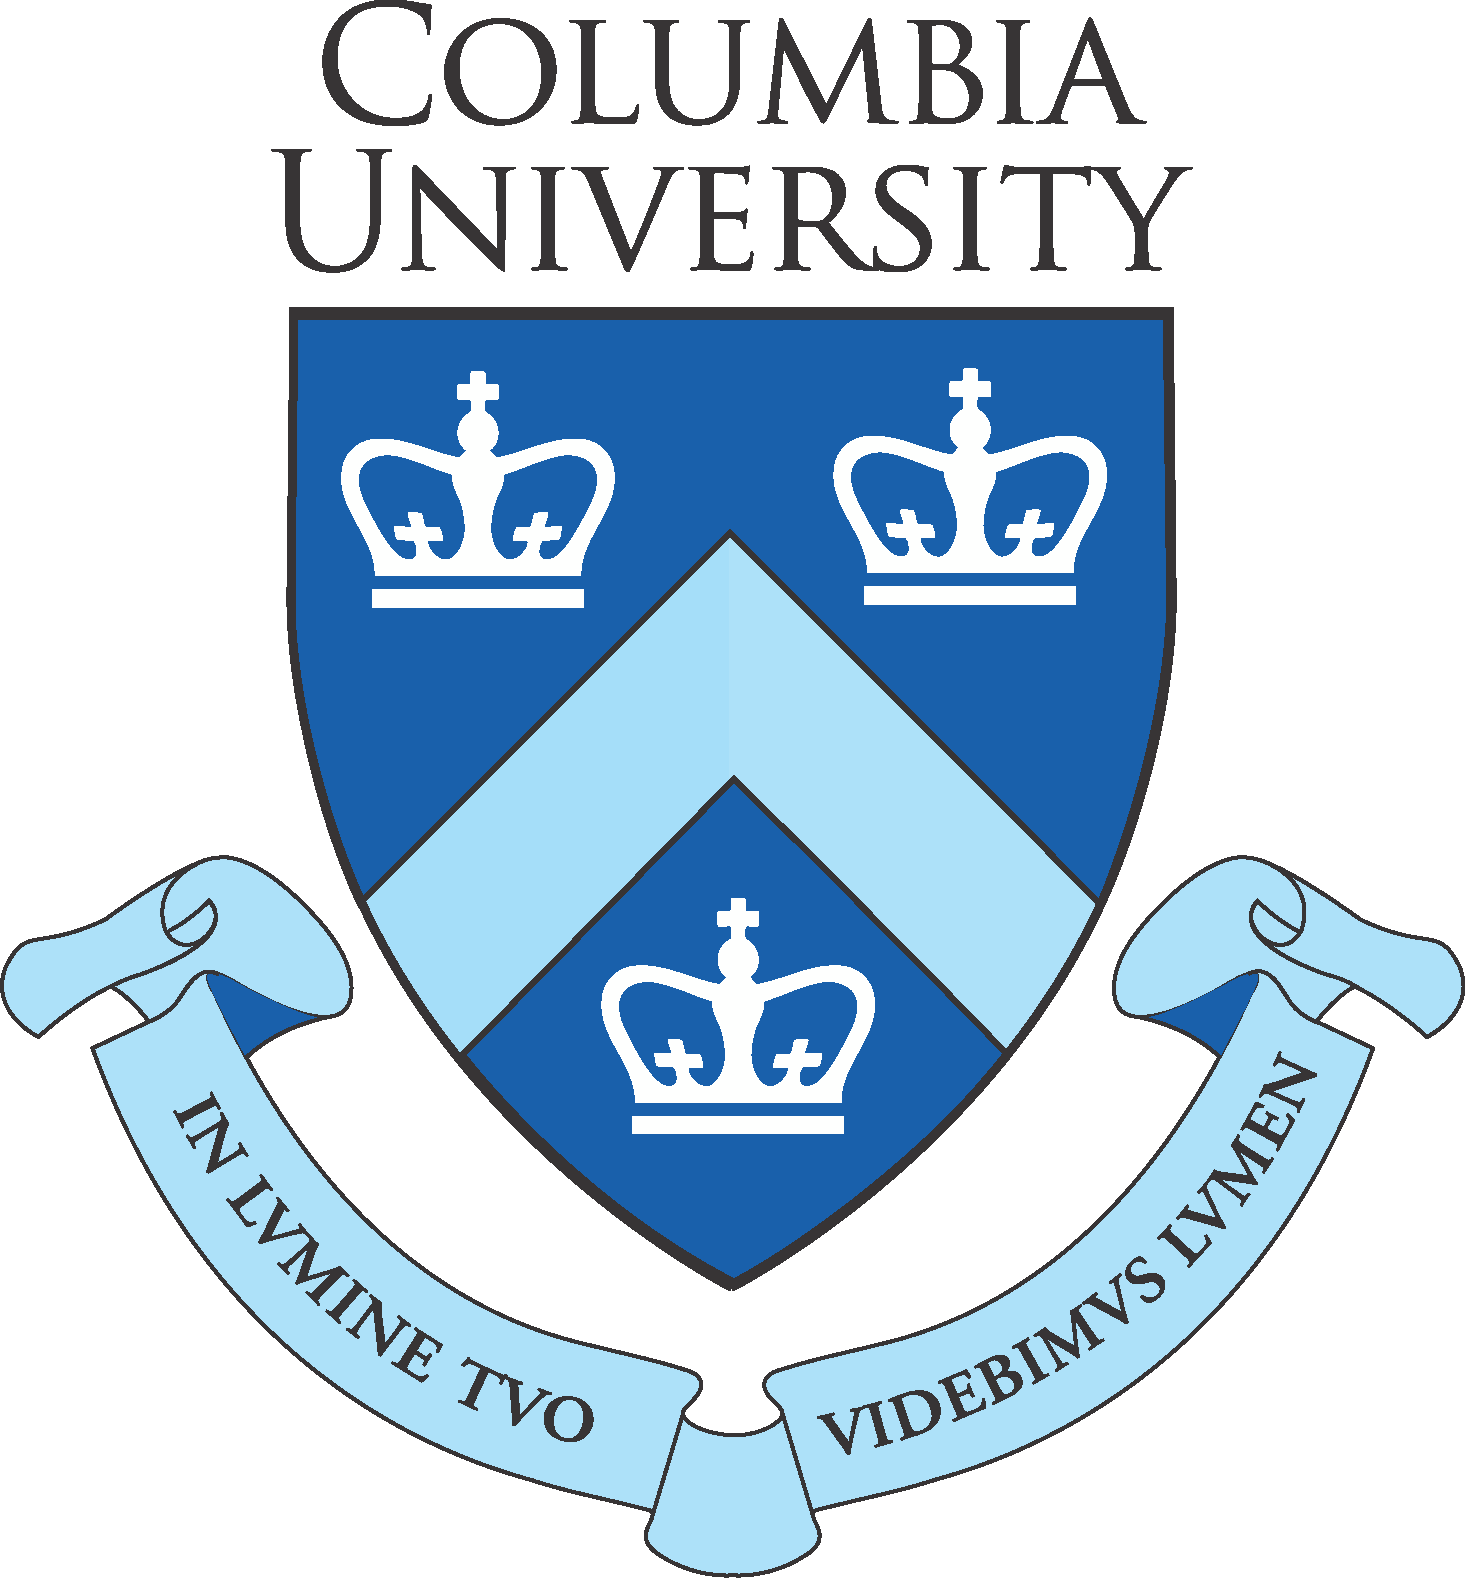 Columbia University Logo and Seals png